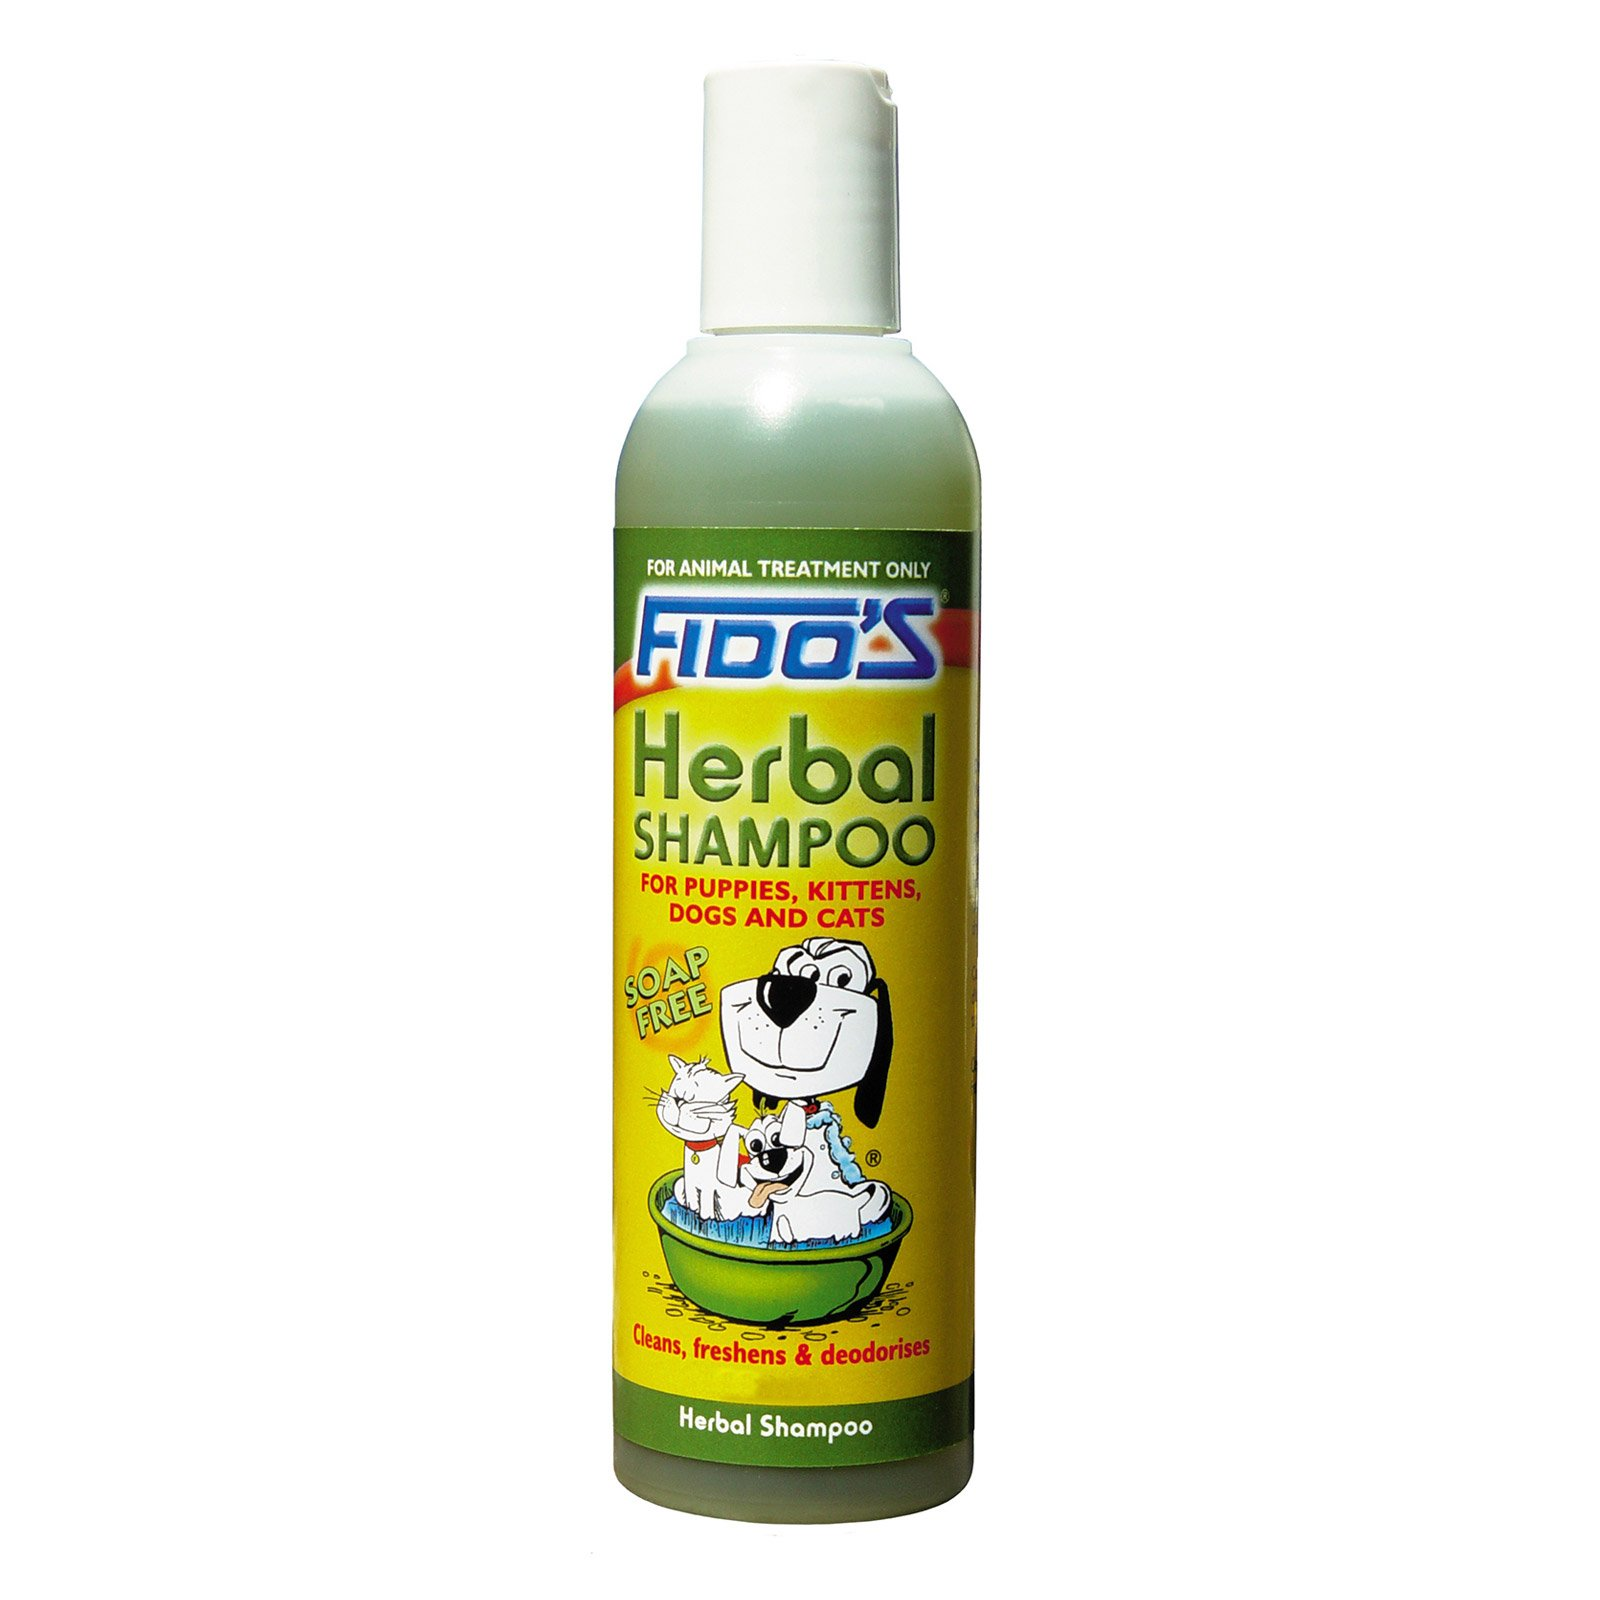 Fidos Herbal Shampoo For Dogs 250 Ml